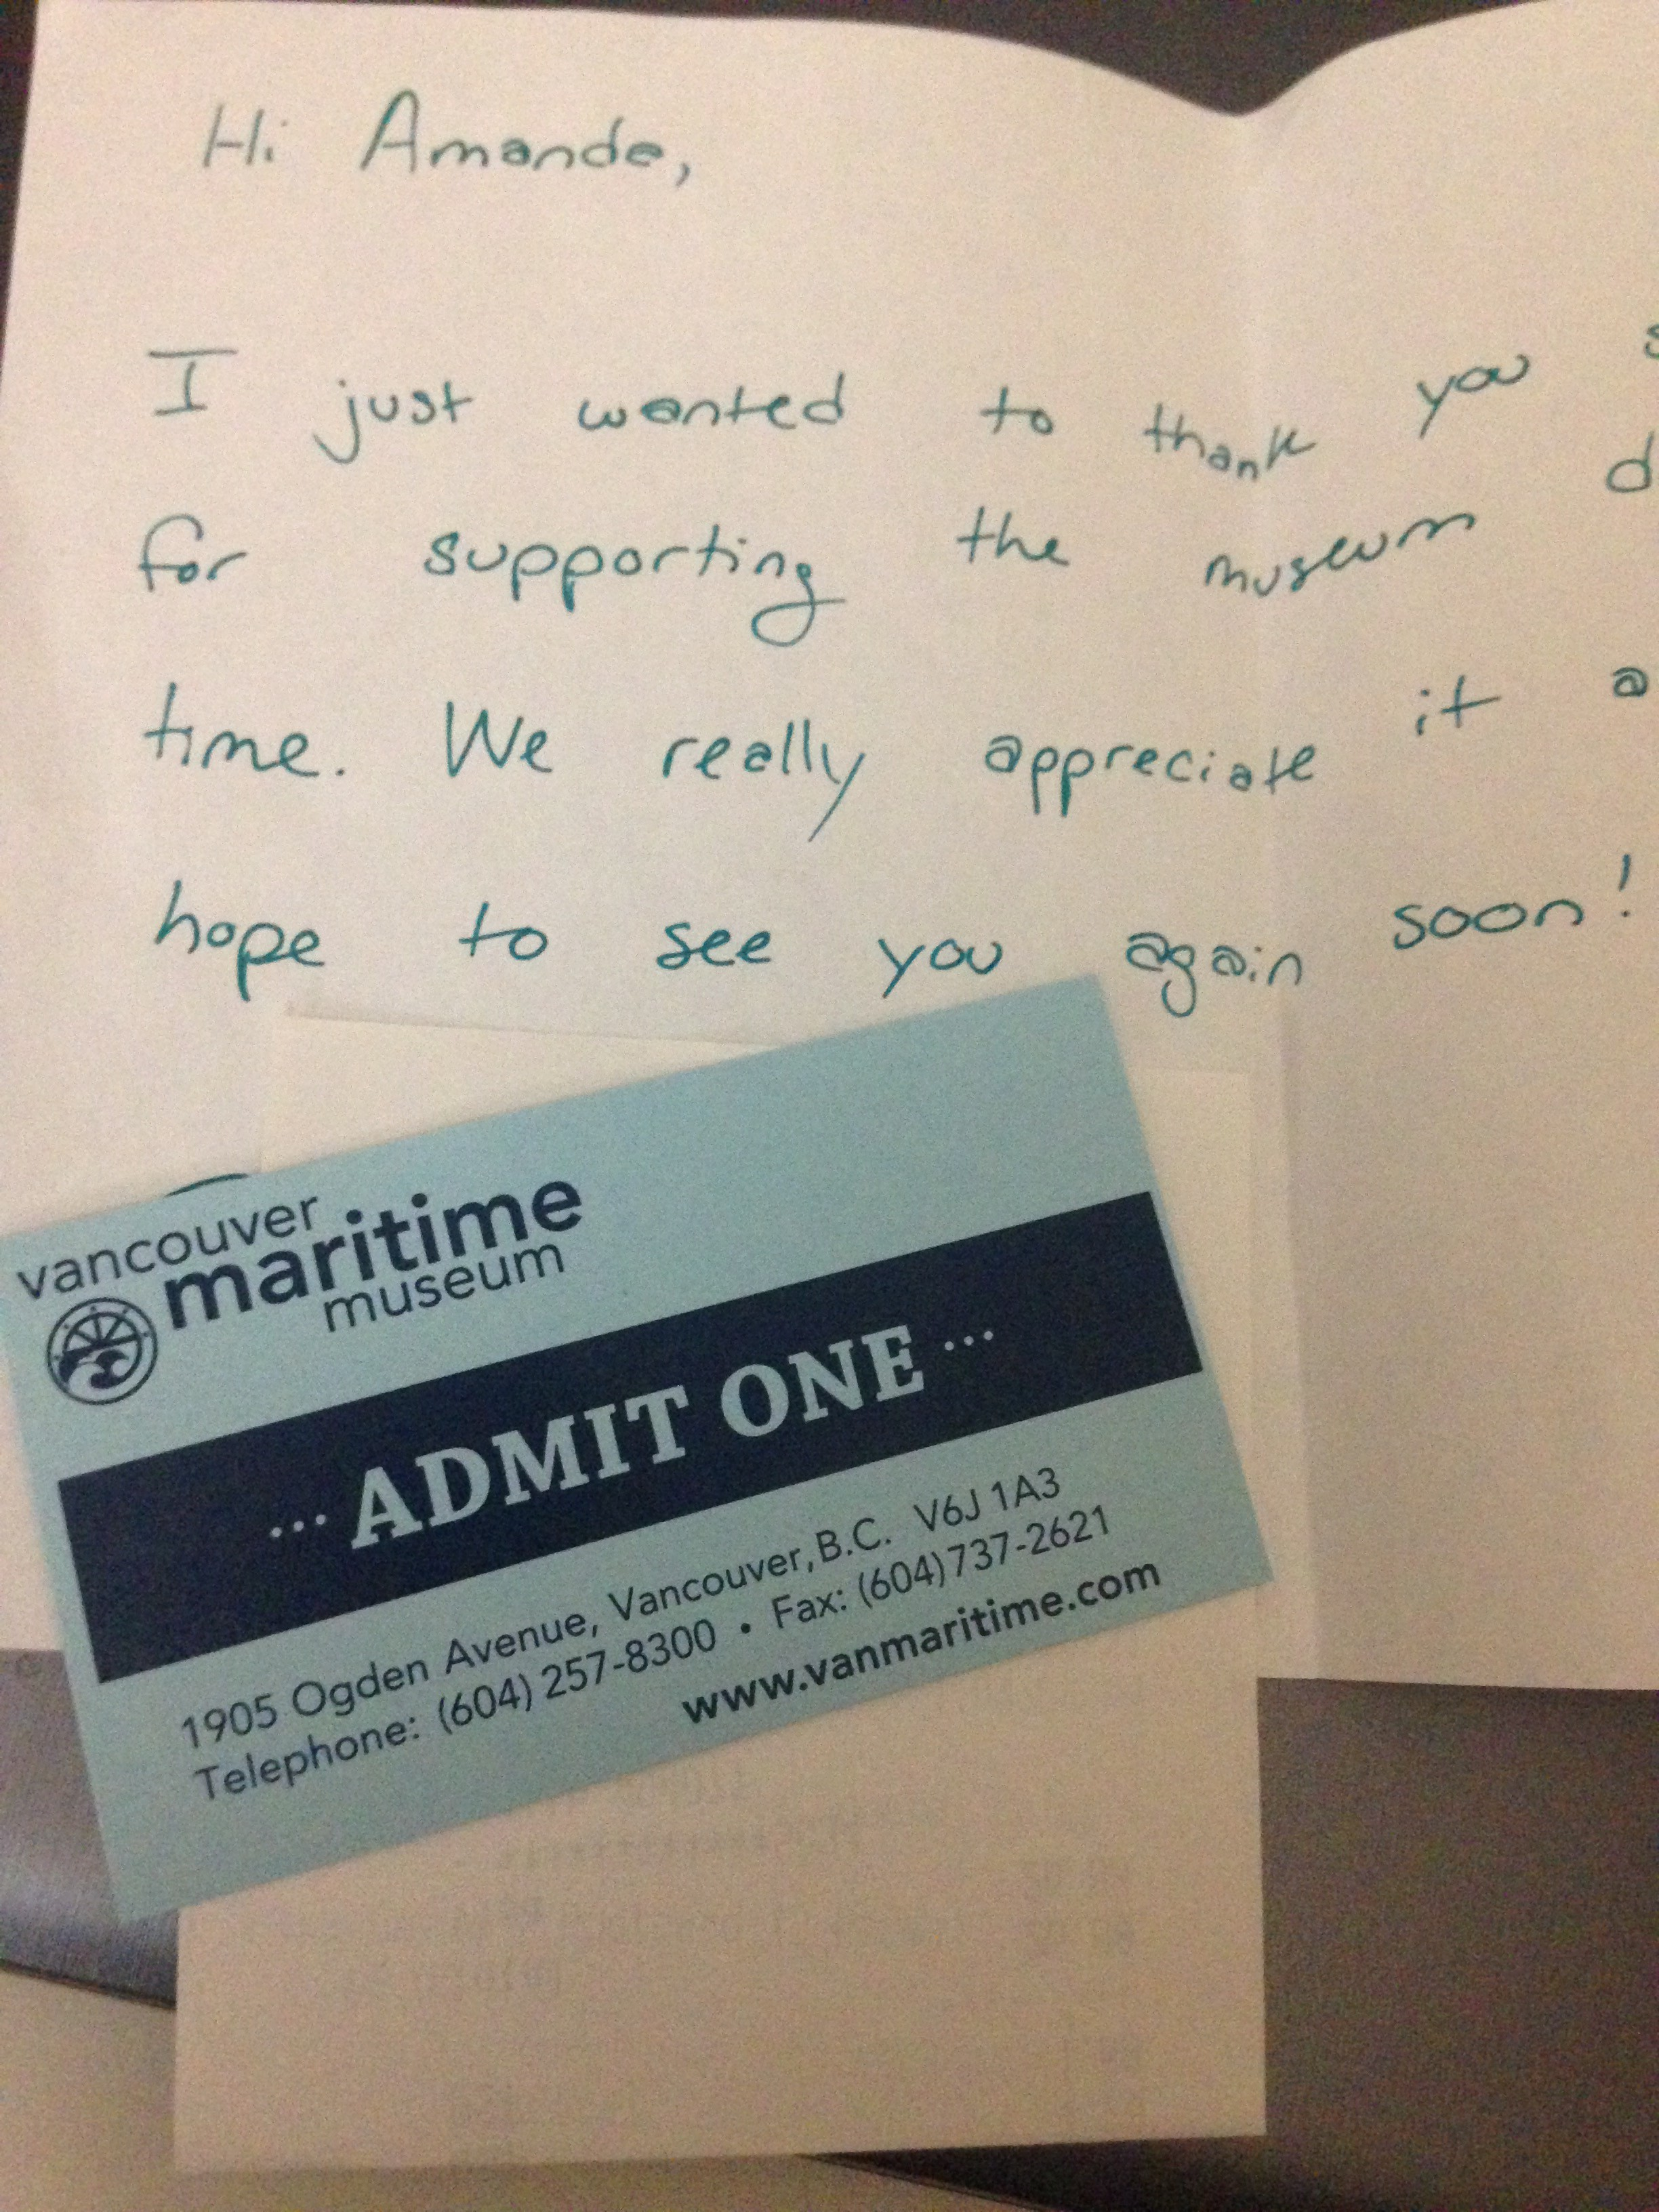 A hand written note of thanks admitance to the maritime museum